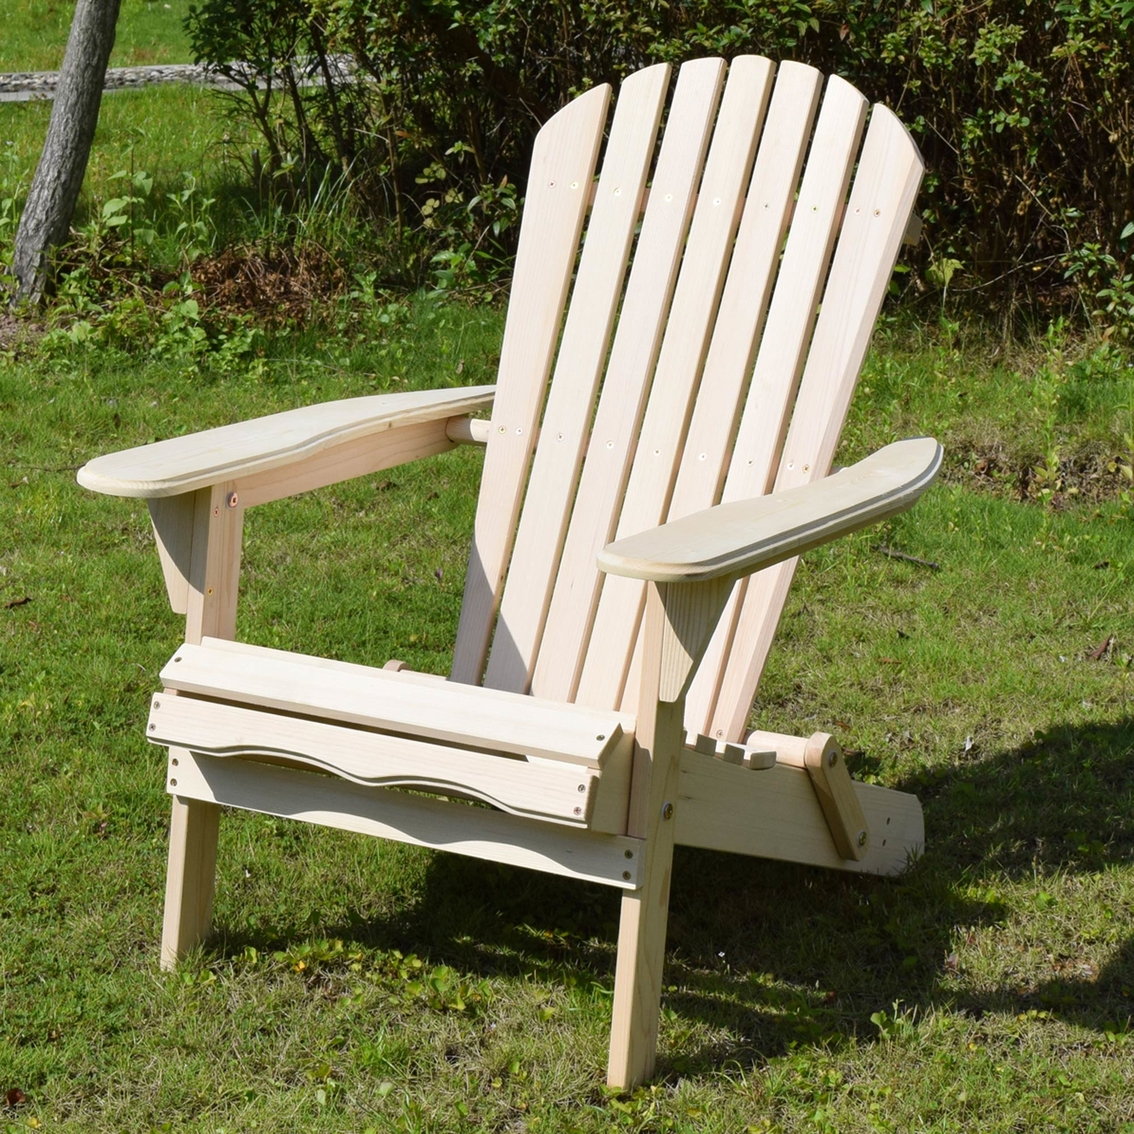 Pleasant Merry Products Foldable Adirondack Chair Kit Adirondack Bralicious Painted Fabric Chair Ideas Braliciousco